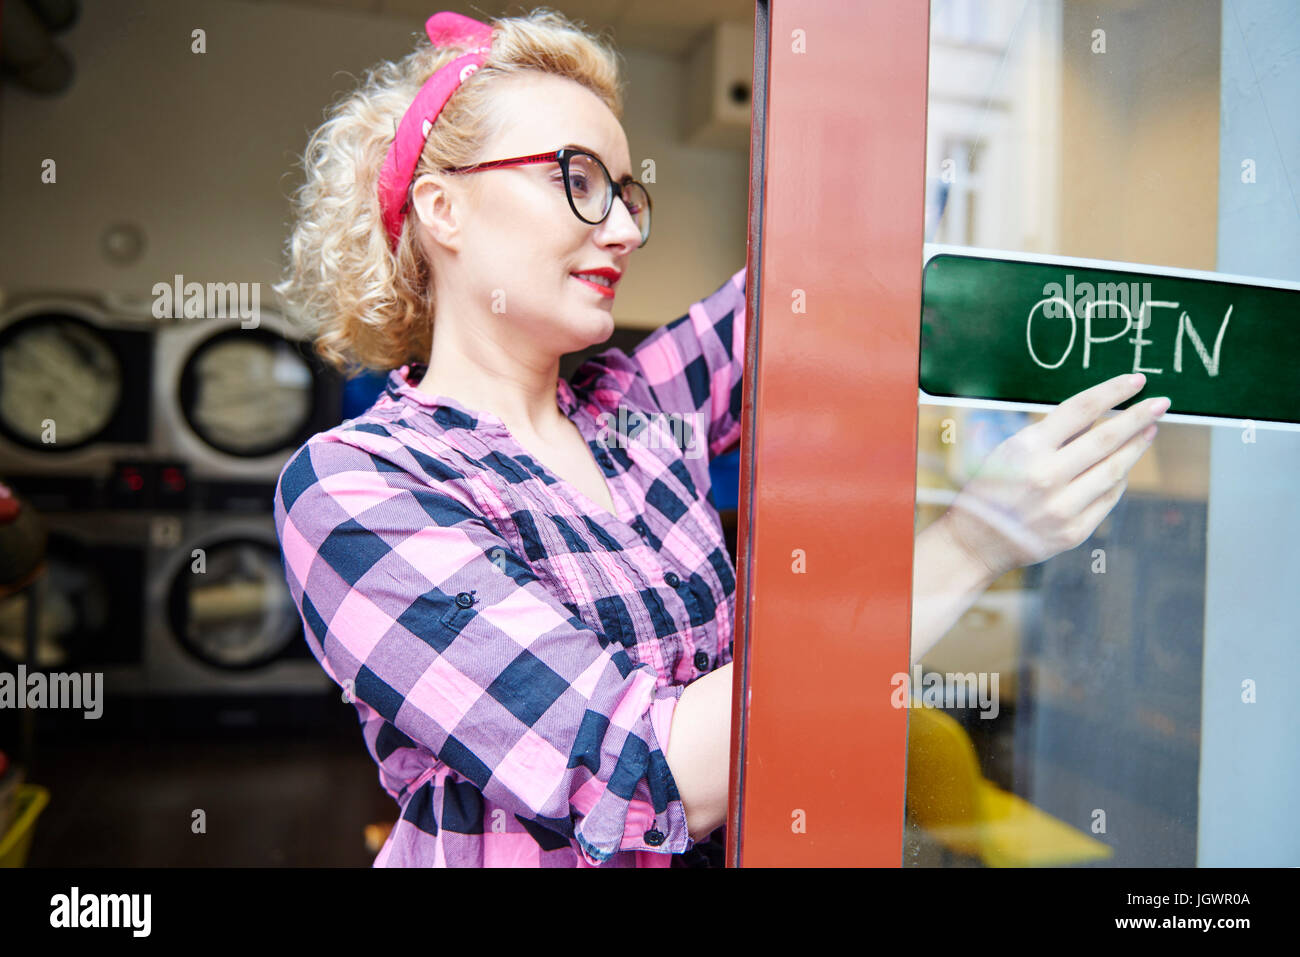 Female small business owner putting up open sign on laundrette doorStock Photo